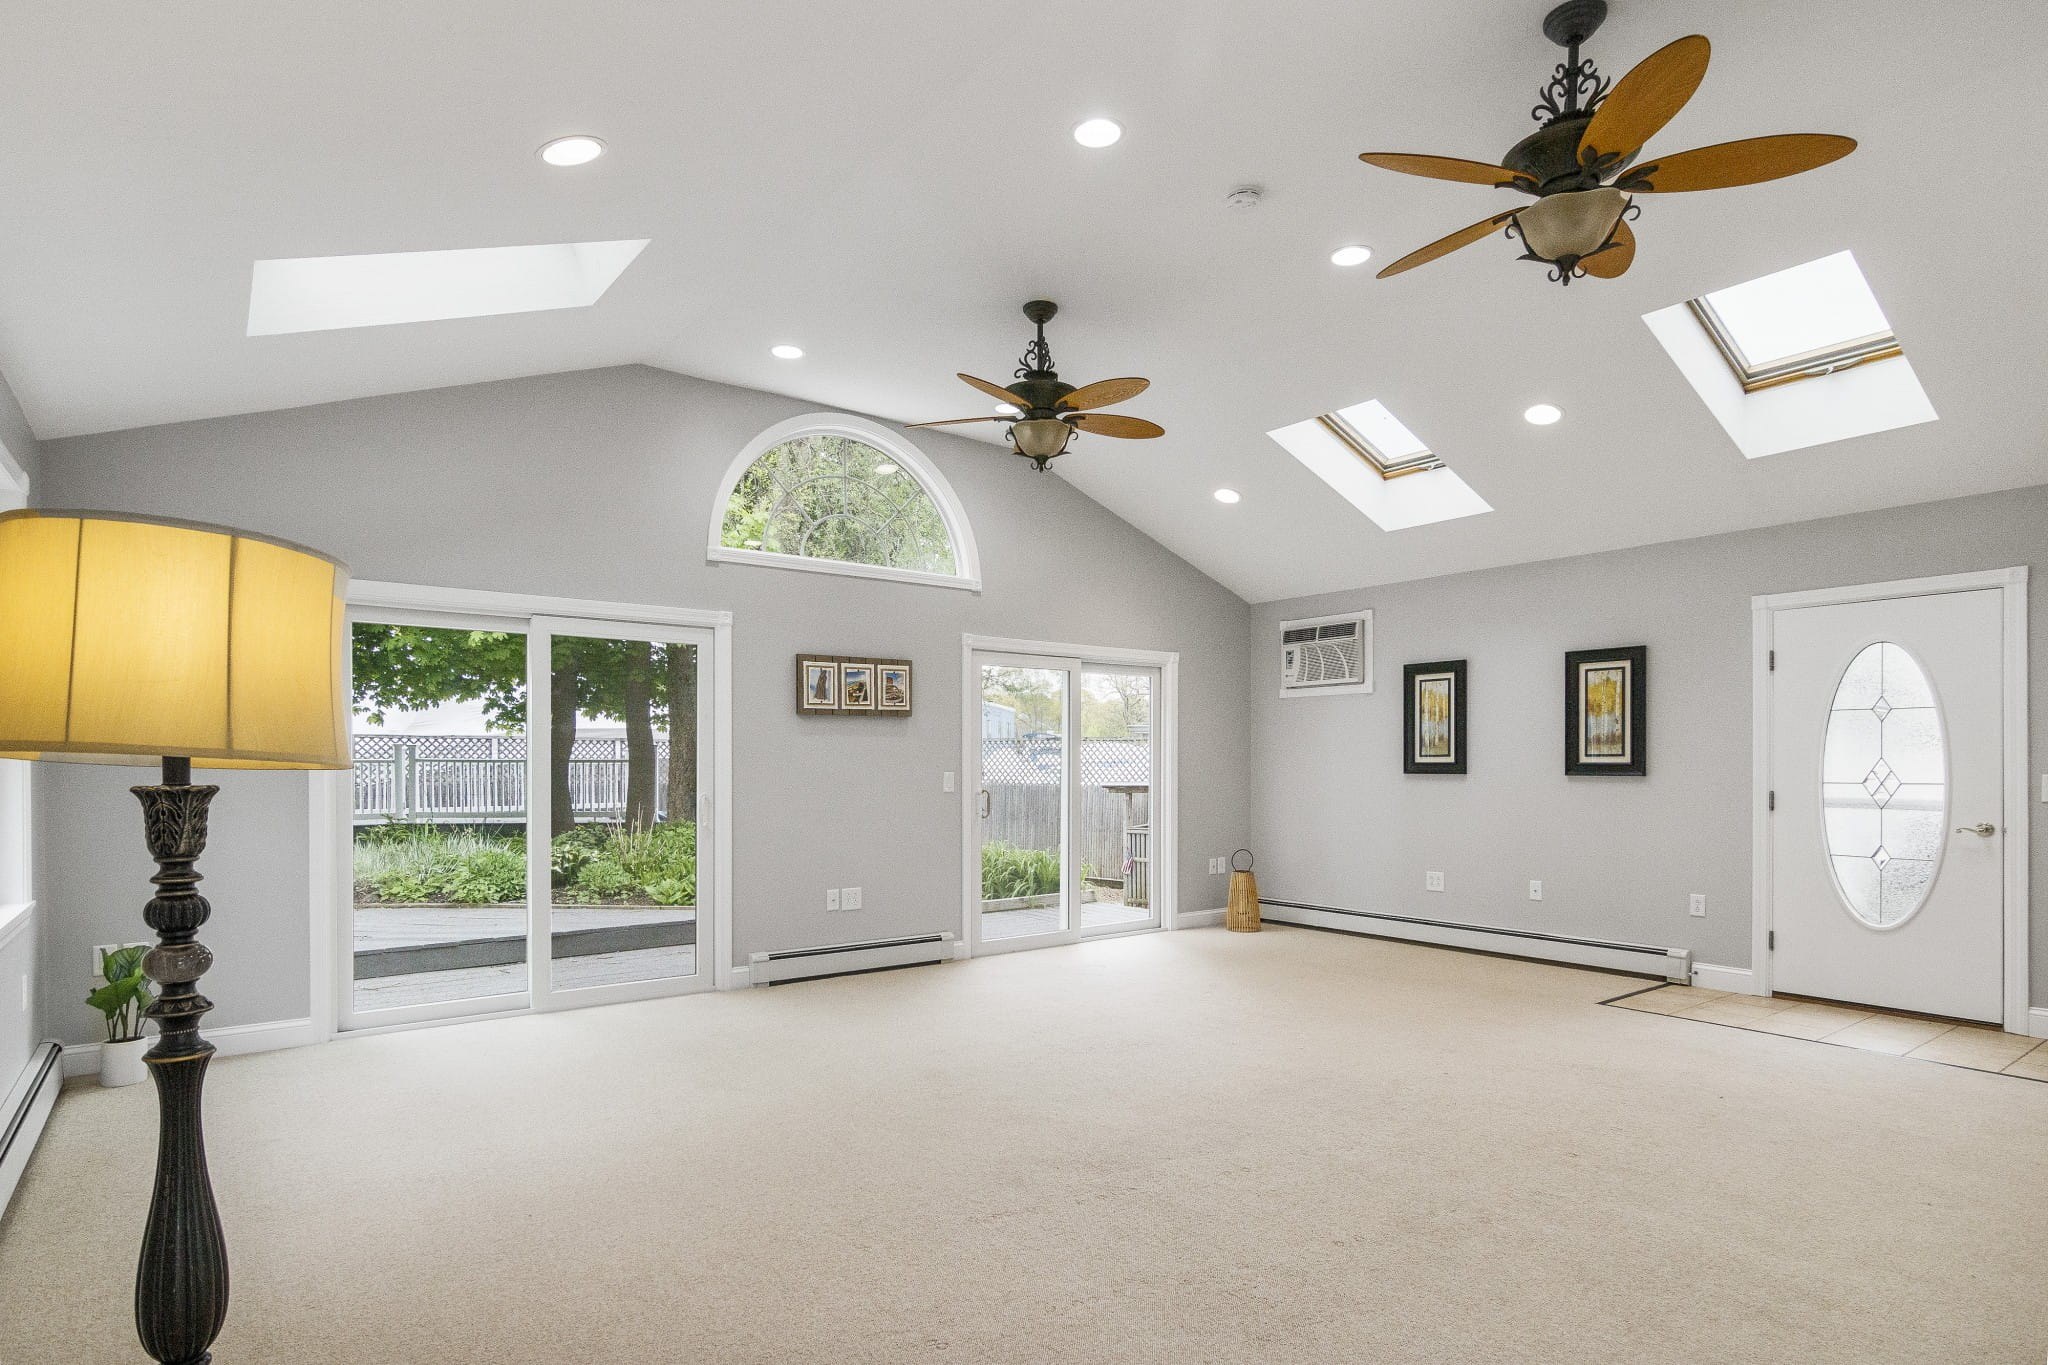 Real Estate Photography in Quincy - MA - USA - Living Area View